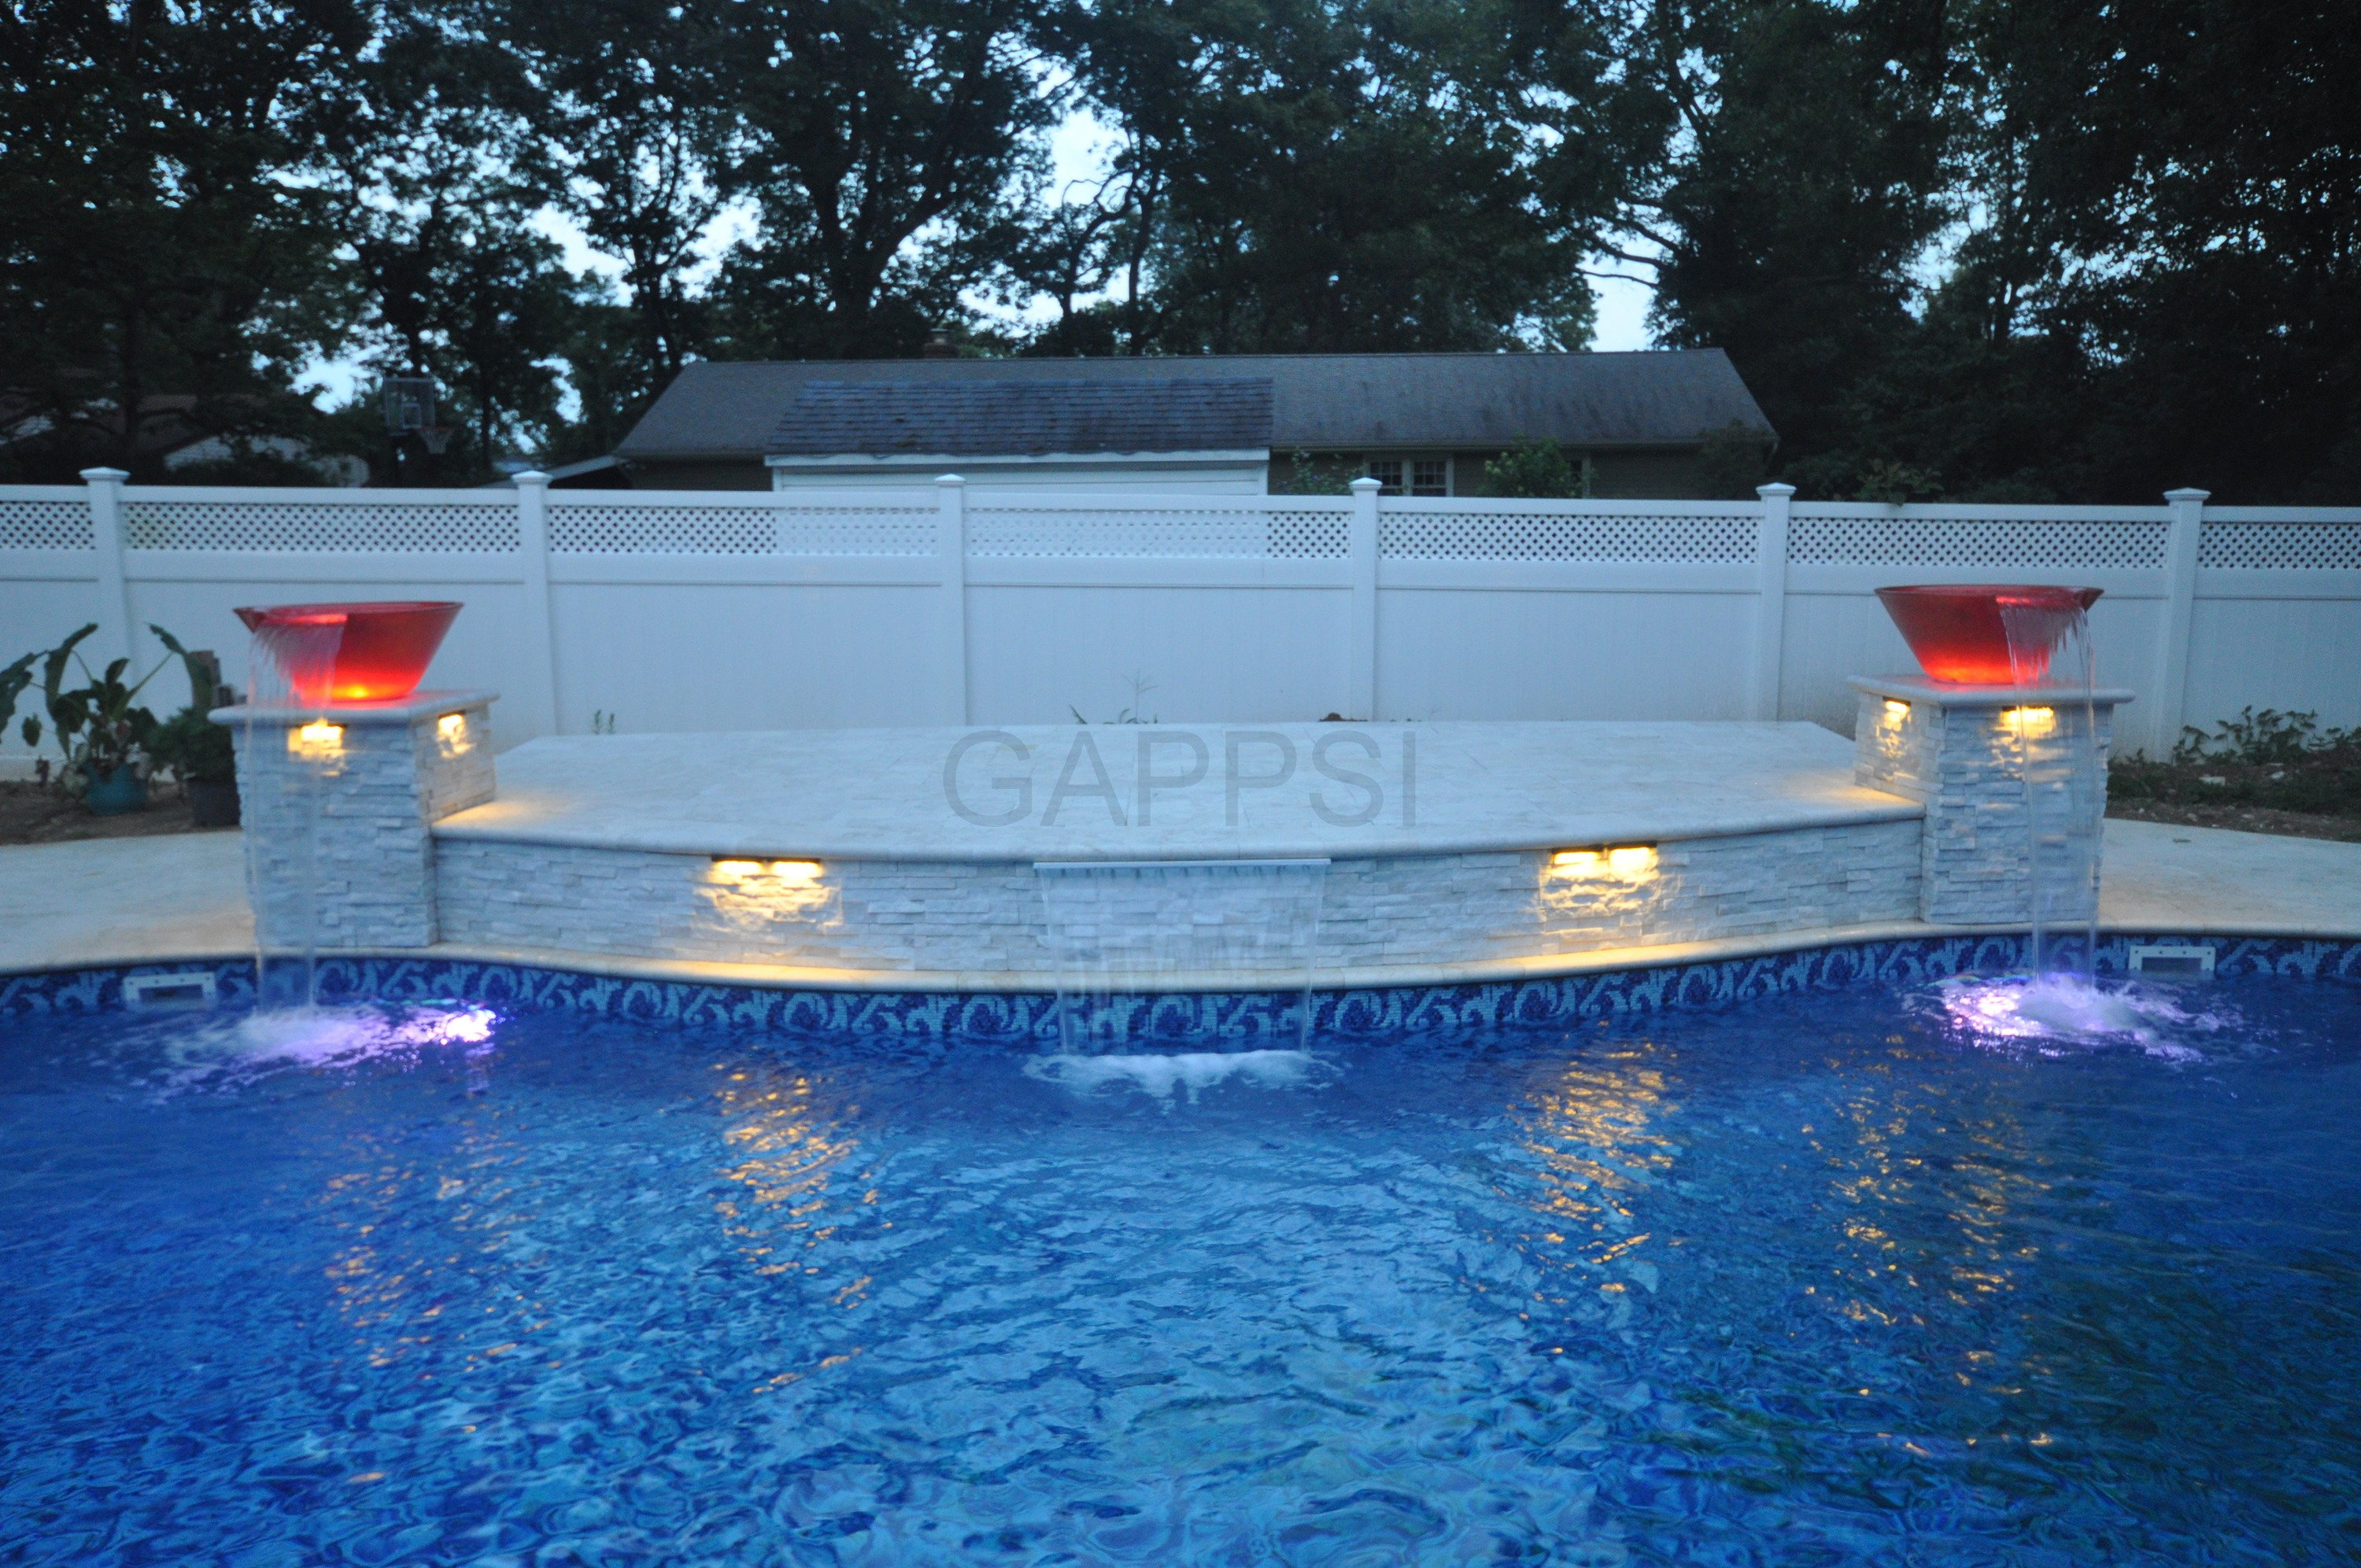 beautiful water featurs for pool patio ideas by Gappsi